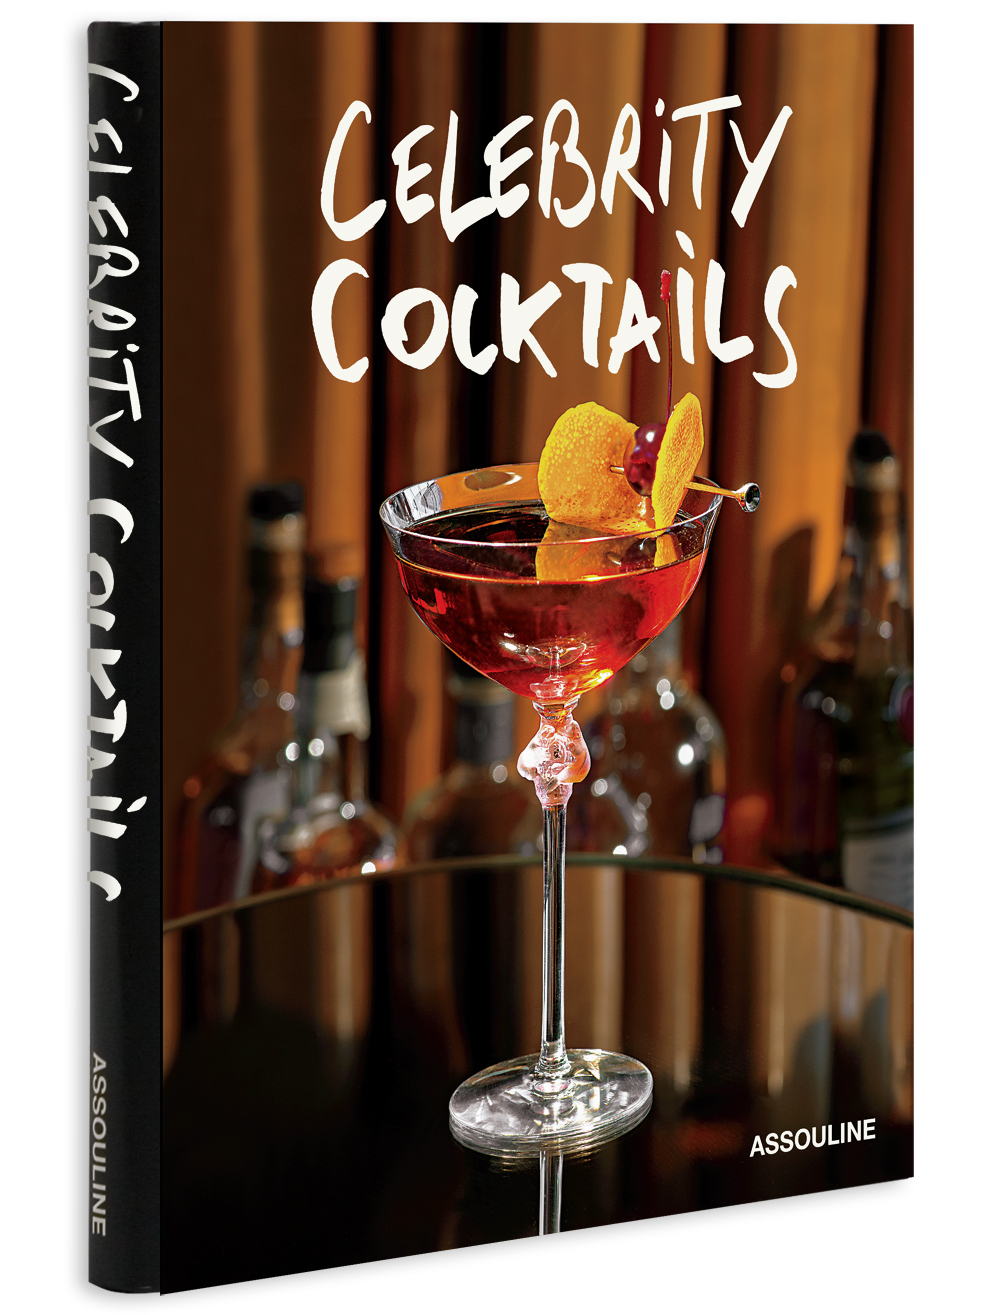 CELEBRITY-COCKTAIL-COVER-RENDERING